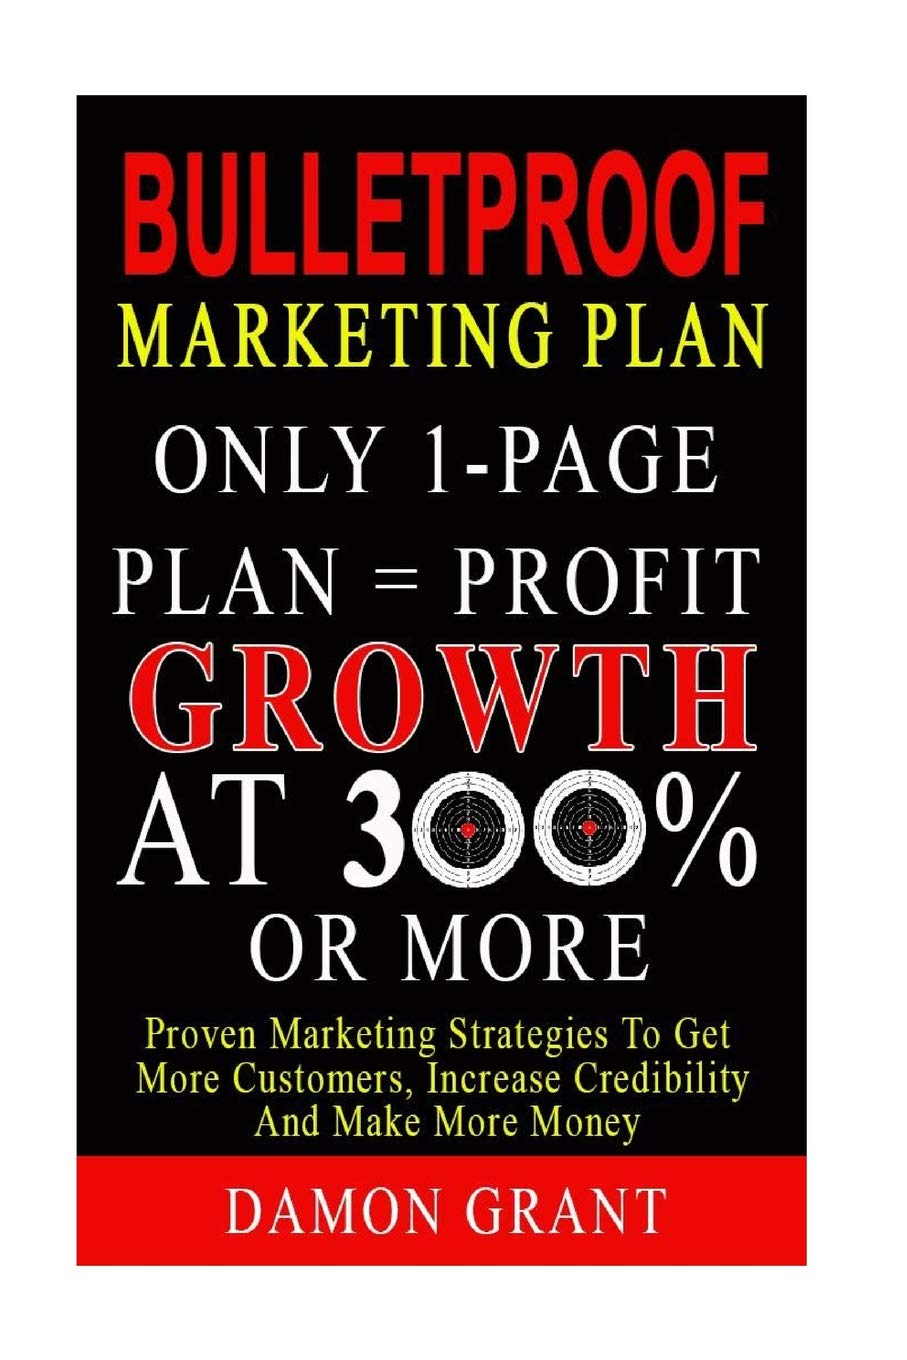 Download Bulletproof Marketing Plan: Only 1-Page Plan = Profit Growth At 300% Or More ebook